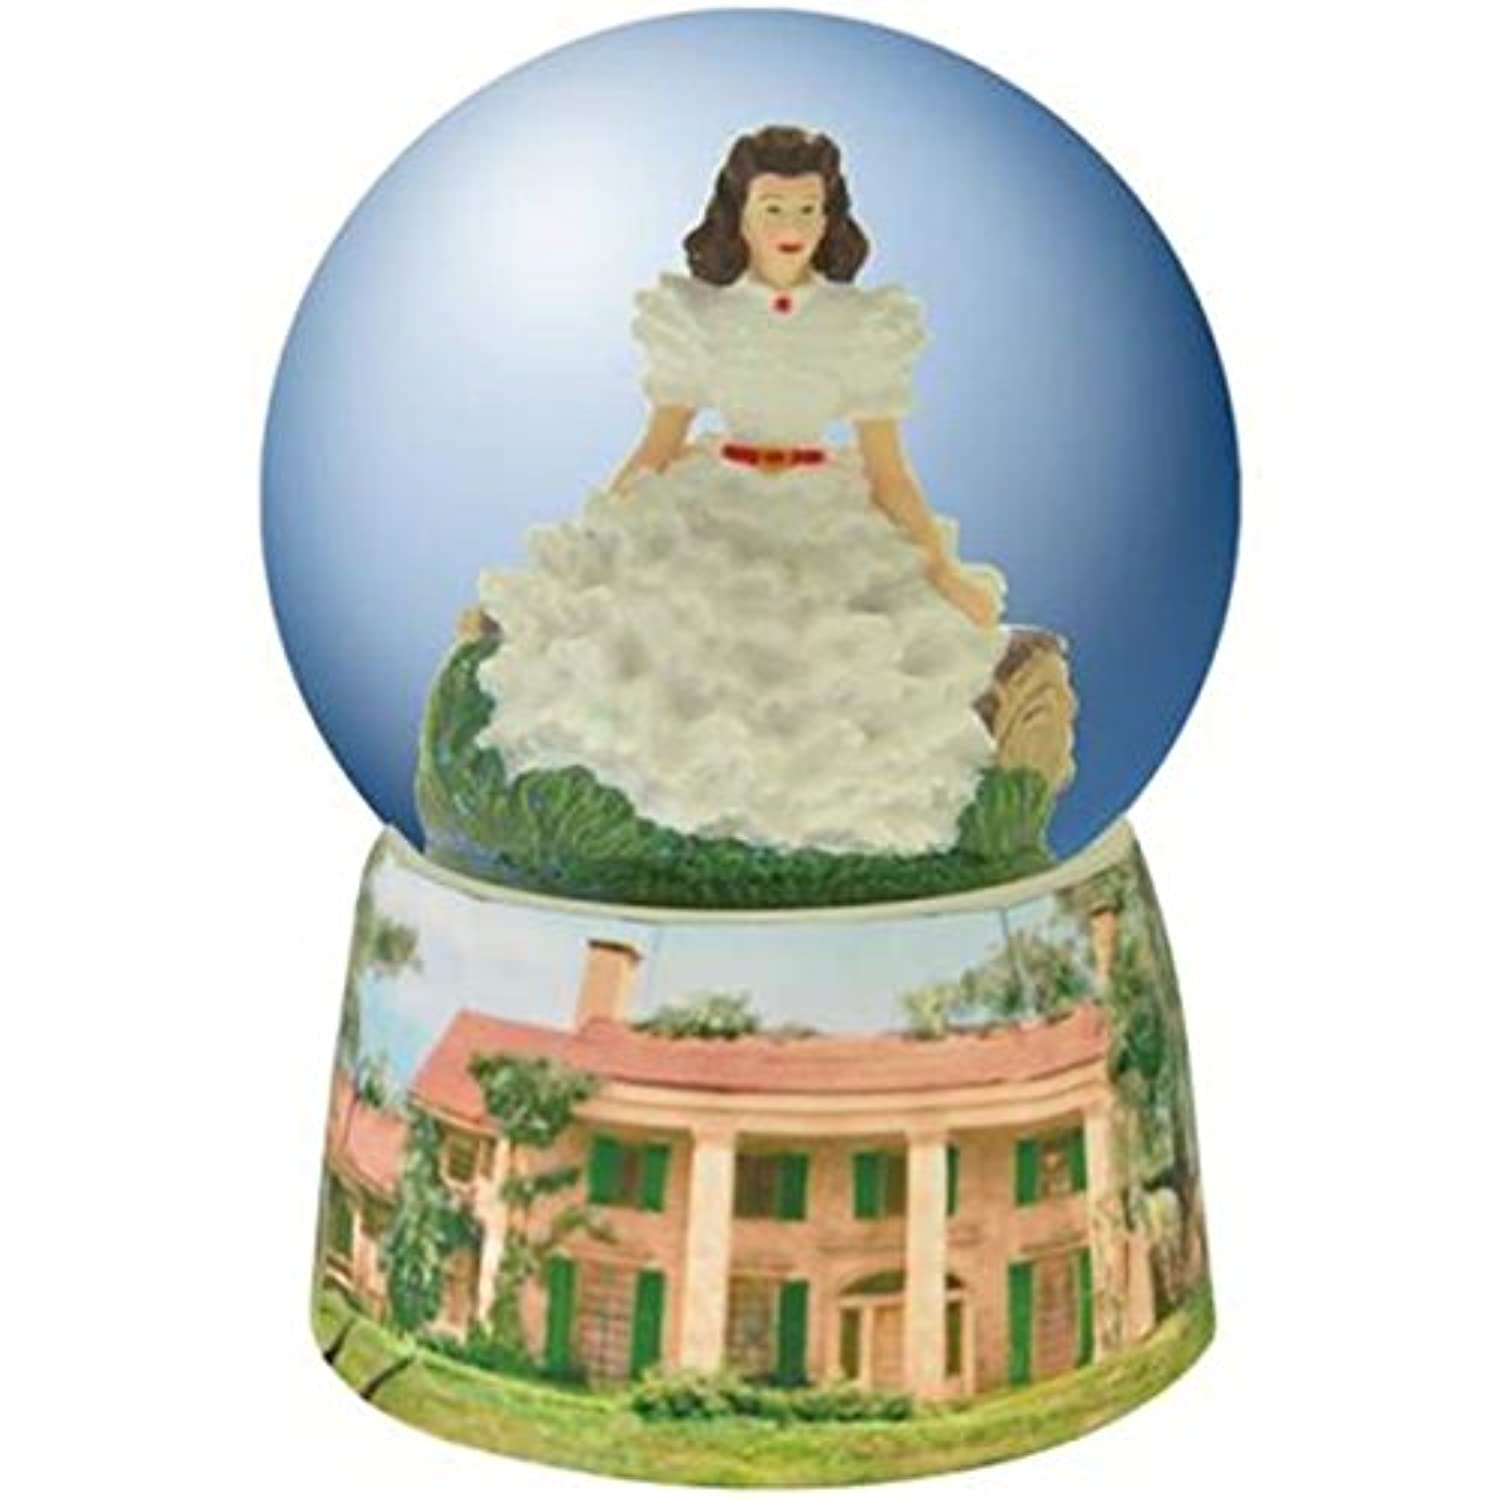 100 mm Gone With The Wind Water Globe withホワイトドレスScarlett